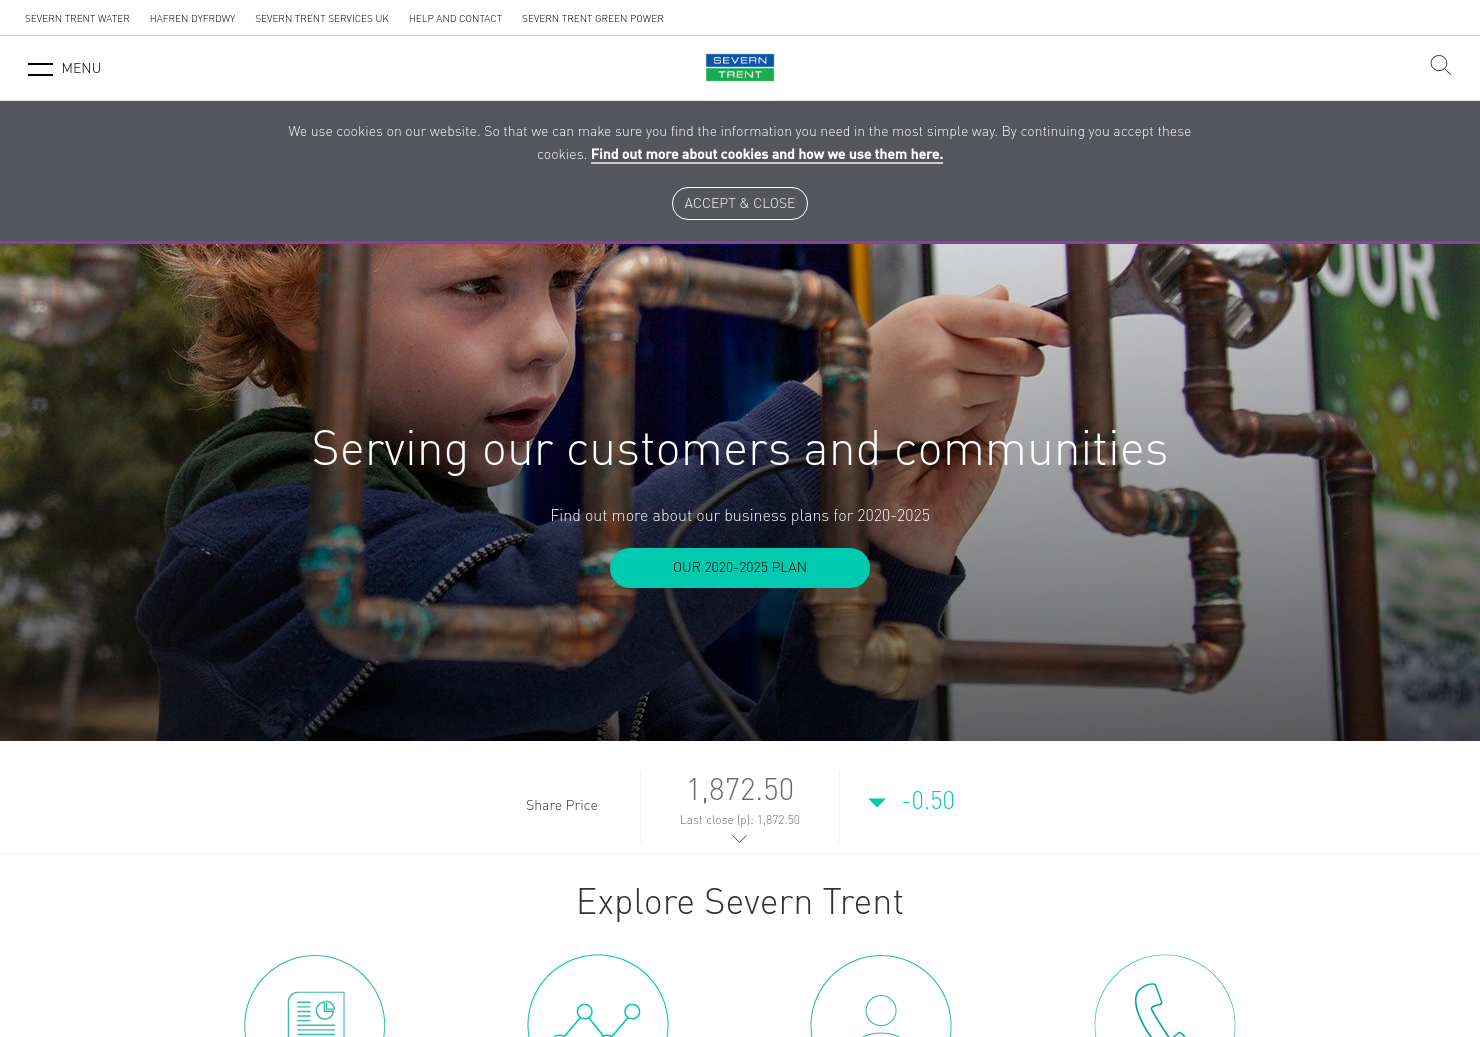 Severn Trent Home Page